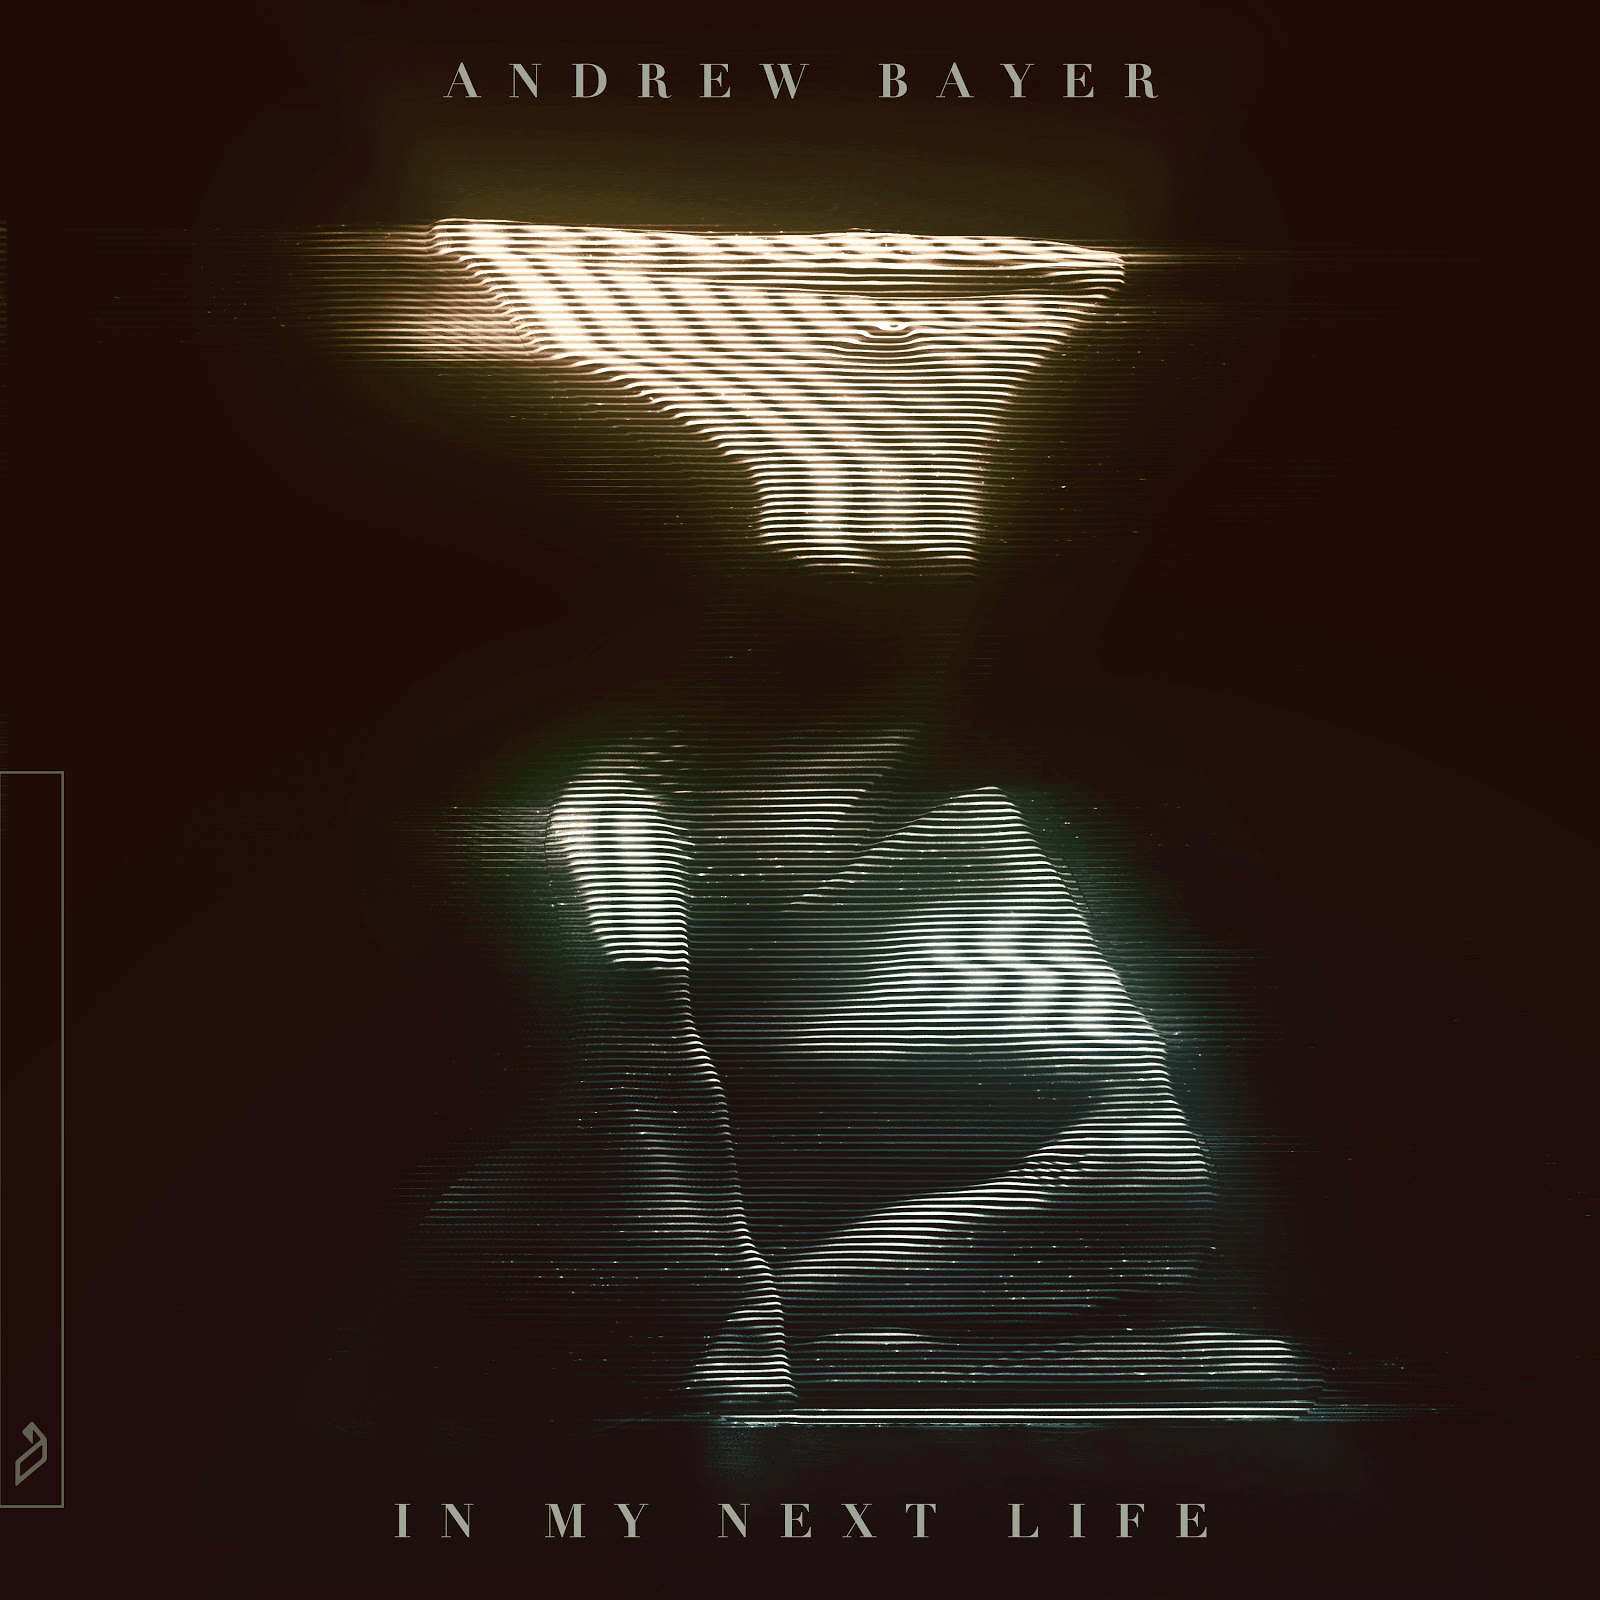 Andrew Bayer shares his In My Next Life album on Anjunabeats